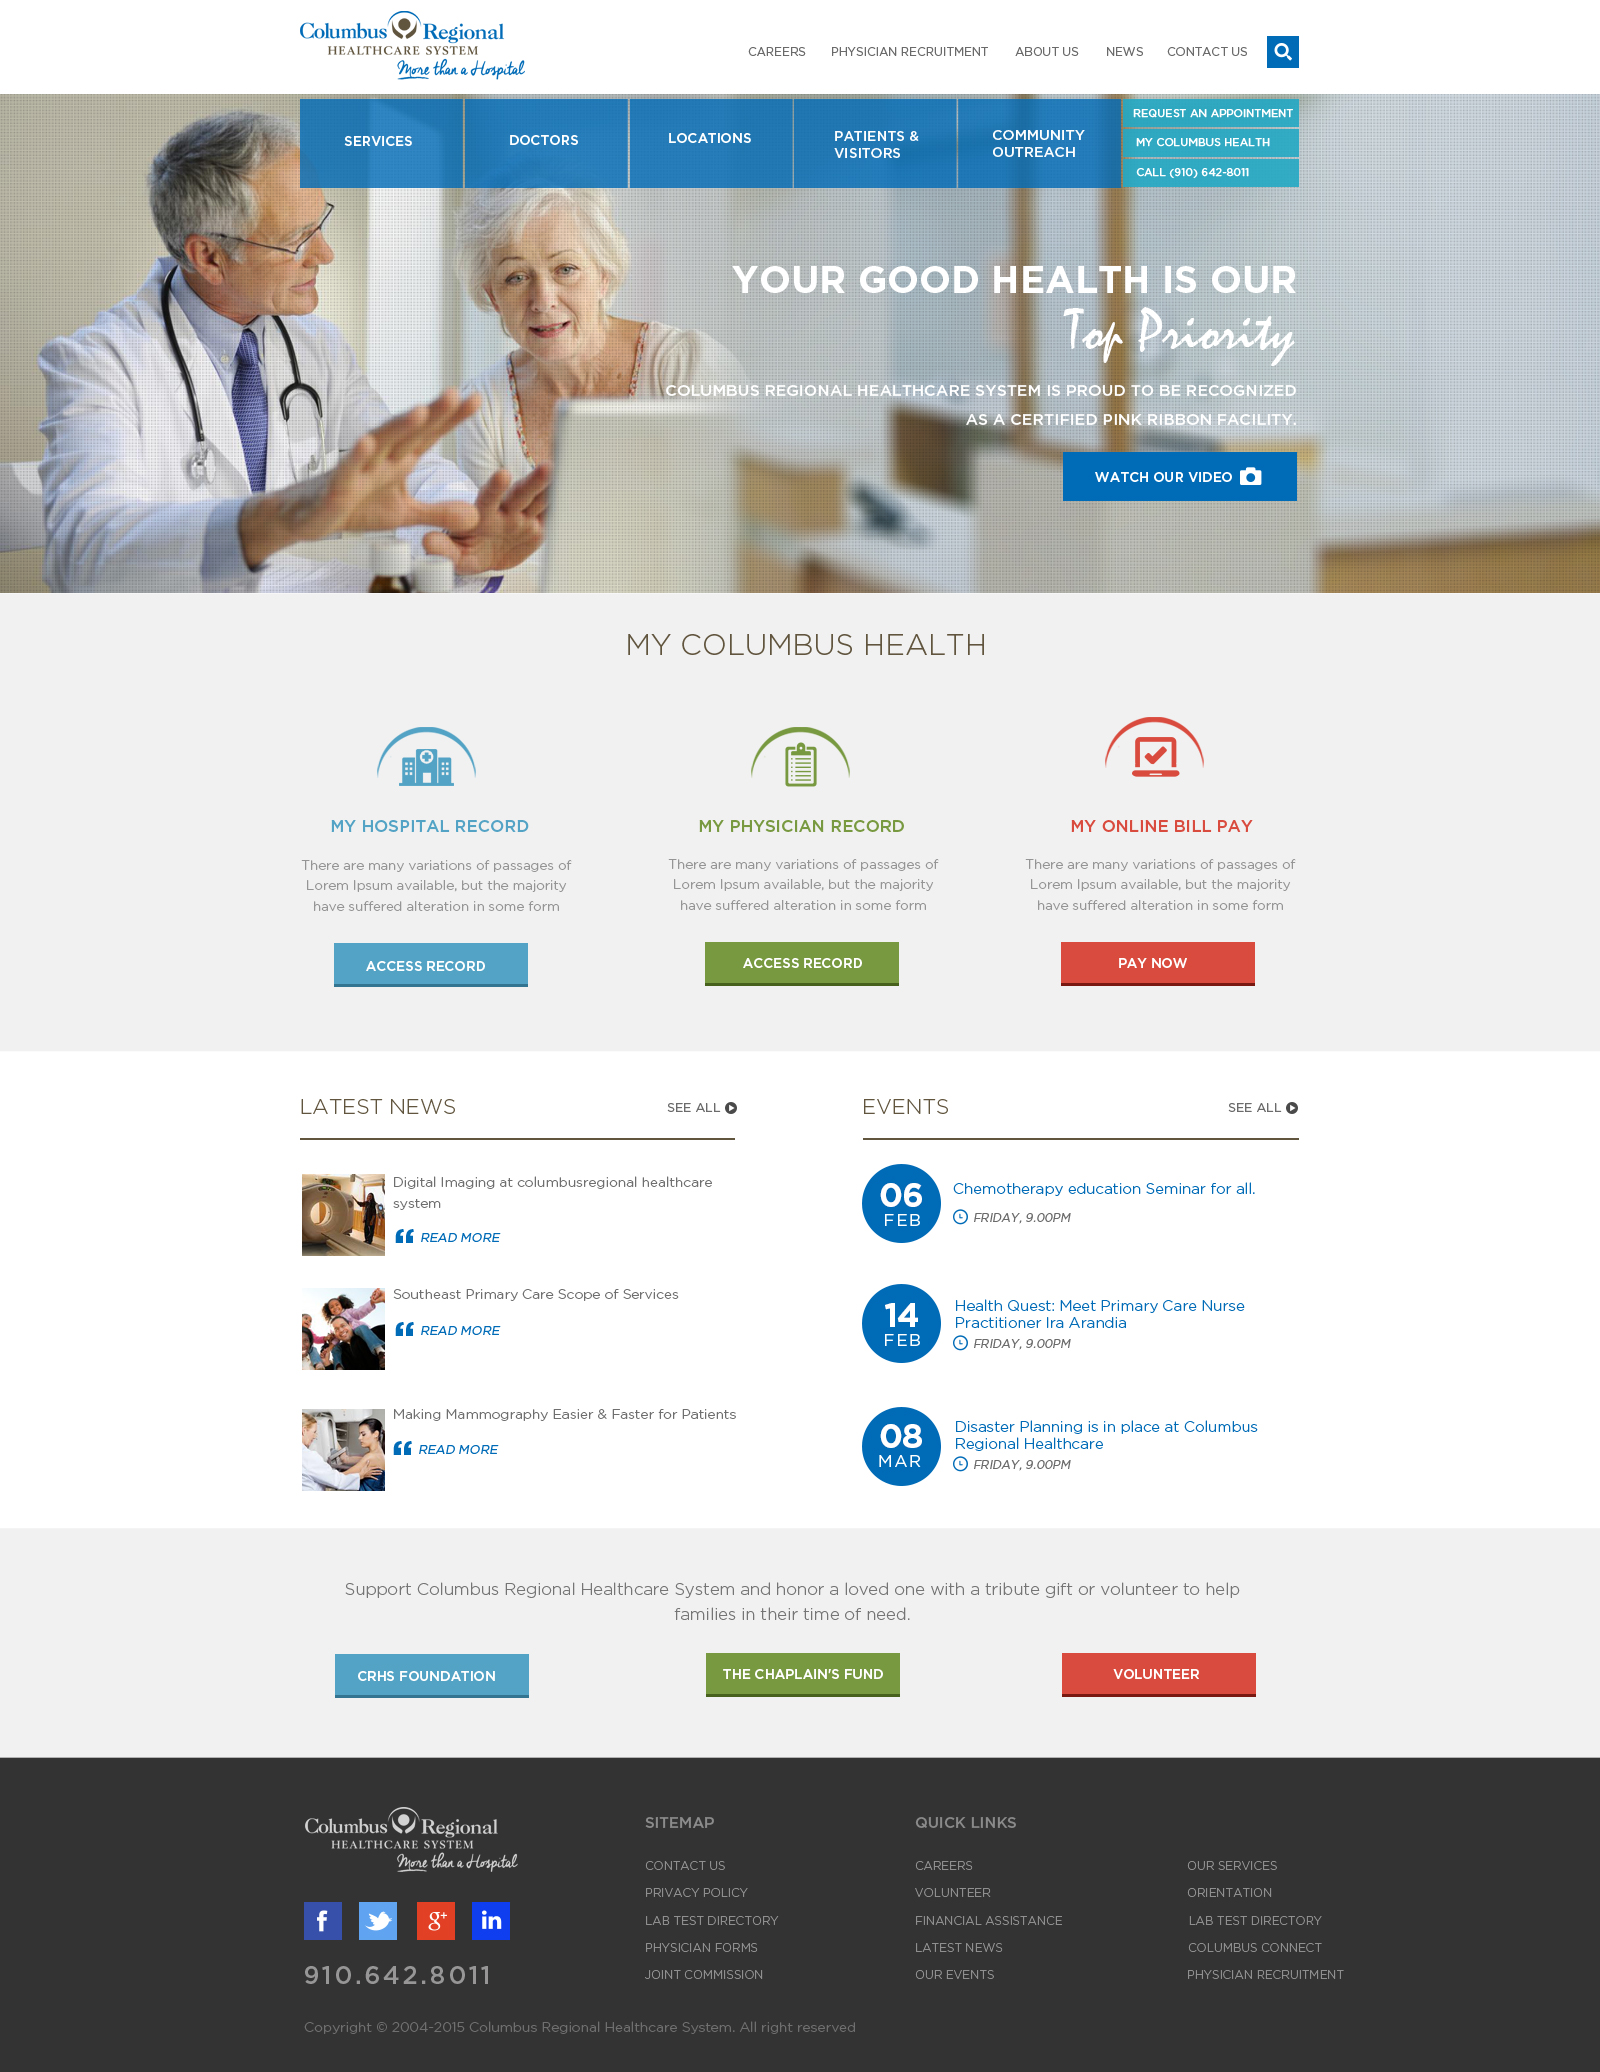 columbus-regional-healthcare-system-website-home-page